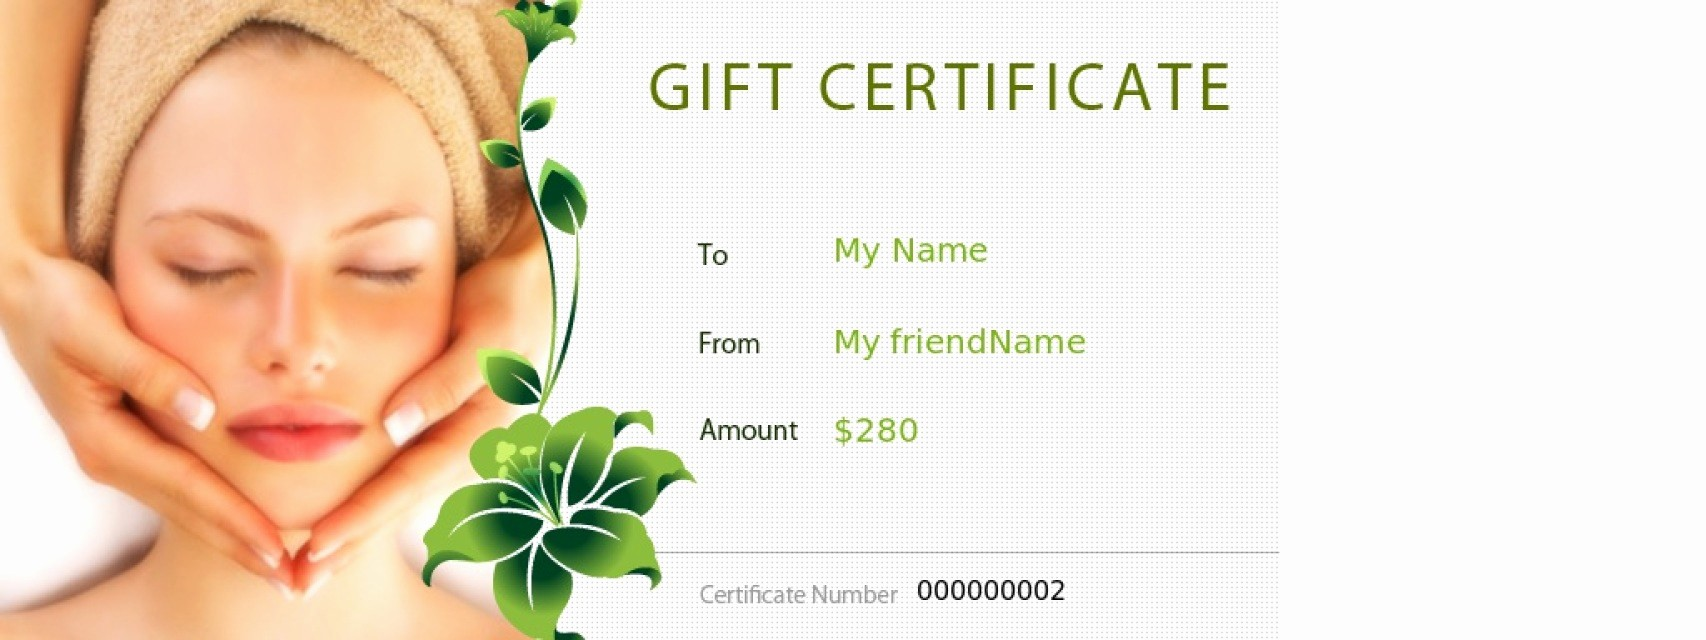 Spa Gift Certificates Templates Free Best Of Lilium Zen Spa Santorini Spa Gifts and Vouchers